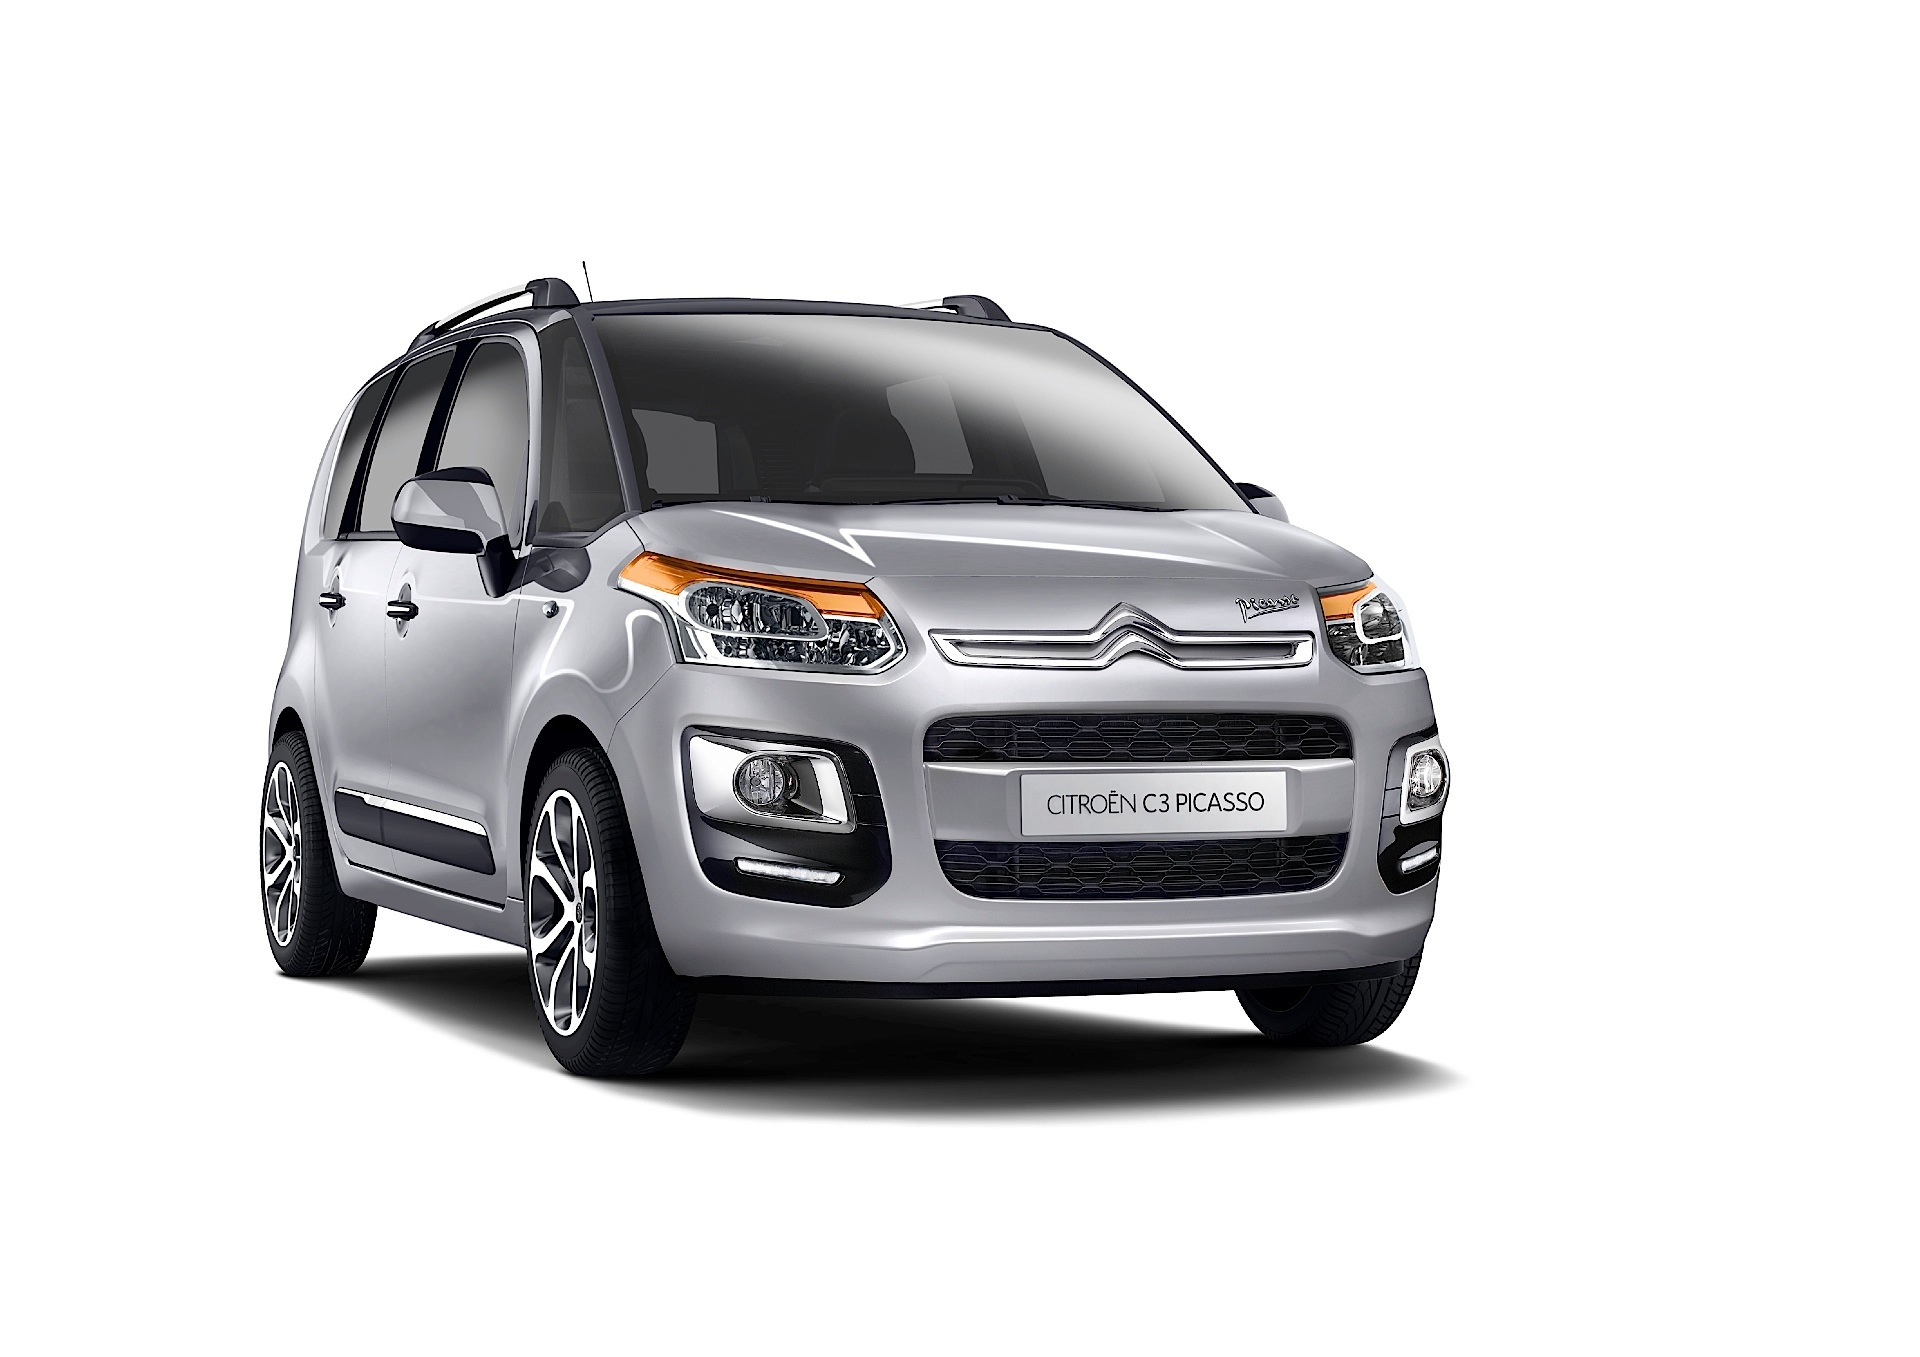 citroen c3 picasso specs 2013 2014 2015 2016 2017. Black Bedroom Furniture Sets. Home Design Ideas